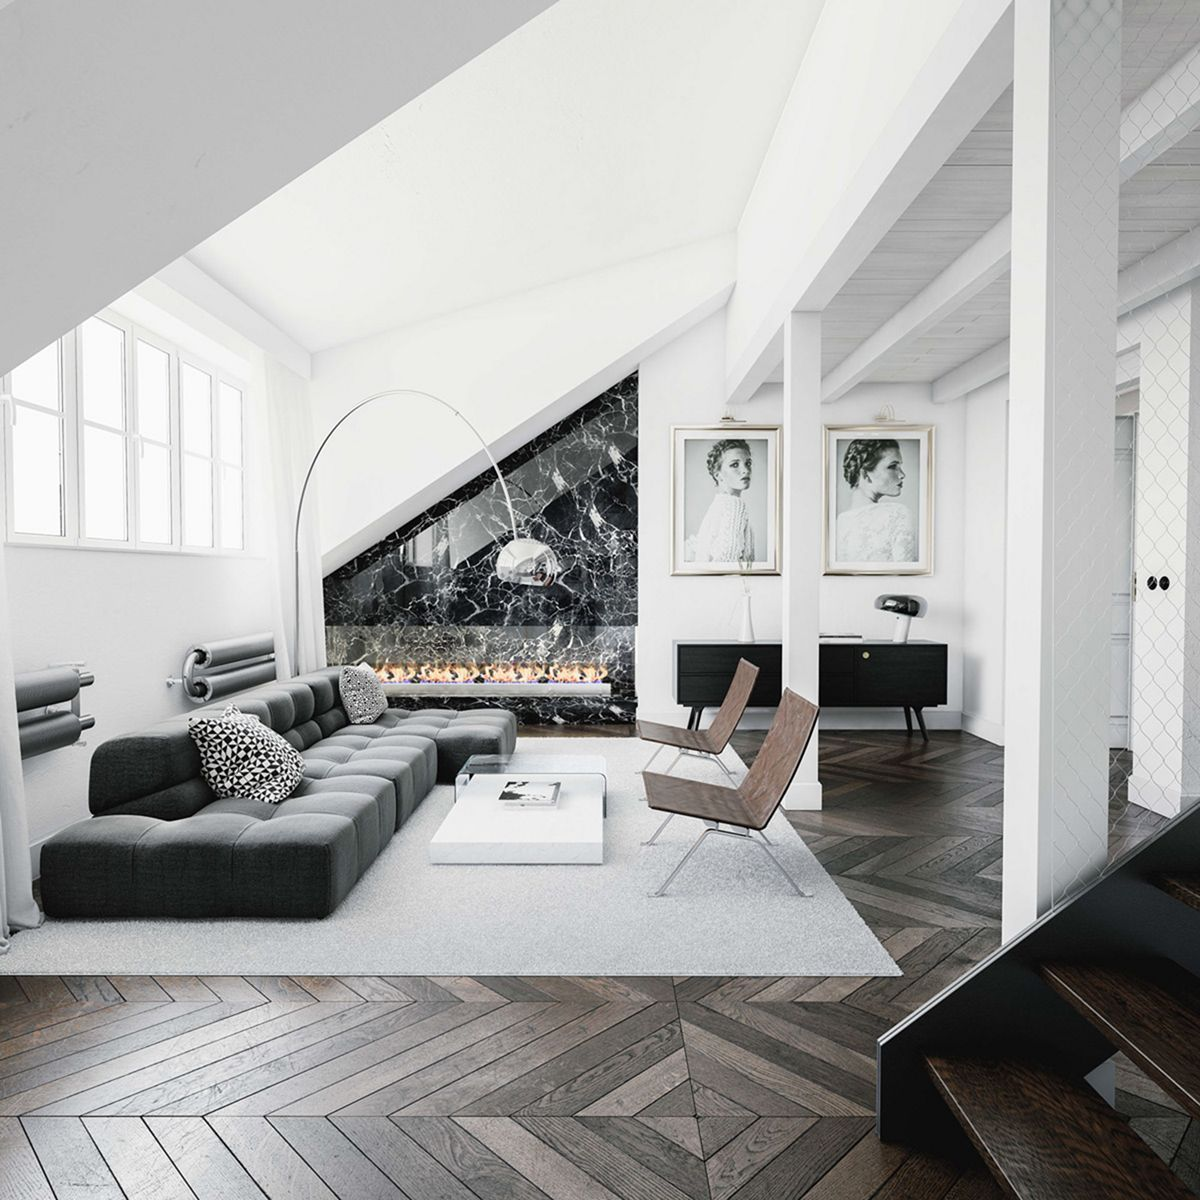 30 Black White Living Rooms That Work Their Monochrome Magic: 20 Fabulous Monochrome Home Decor Ideas For Your